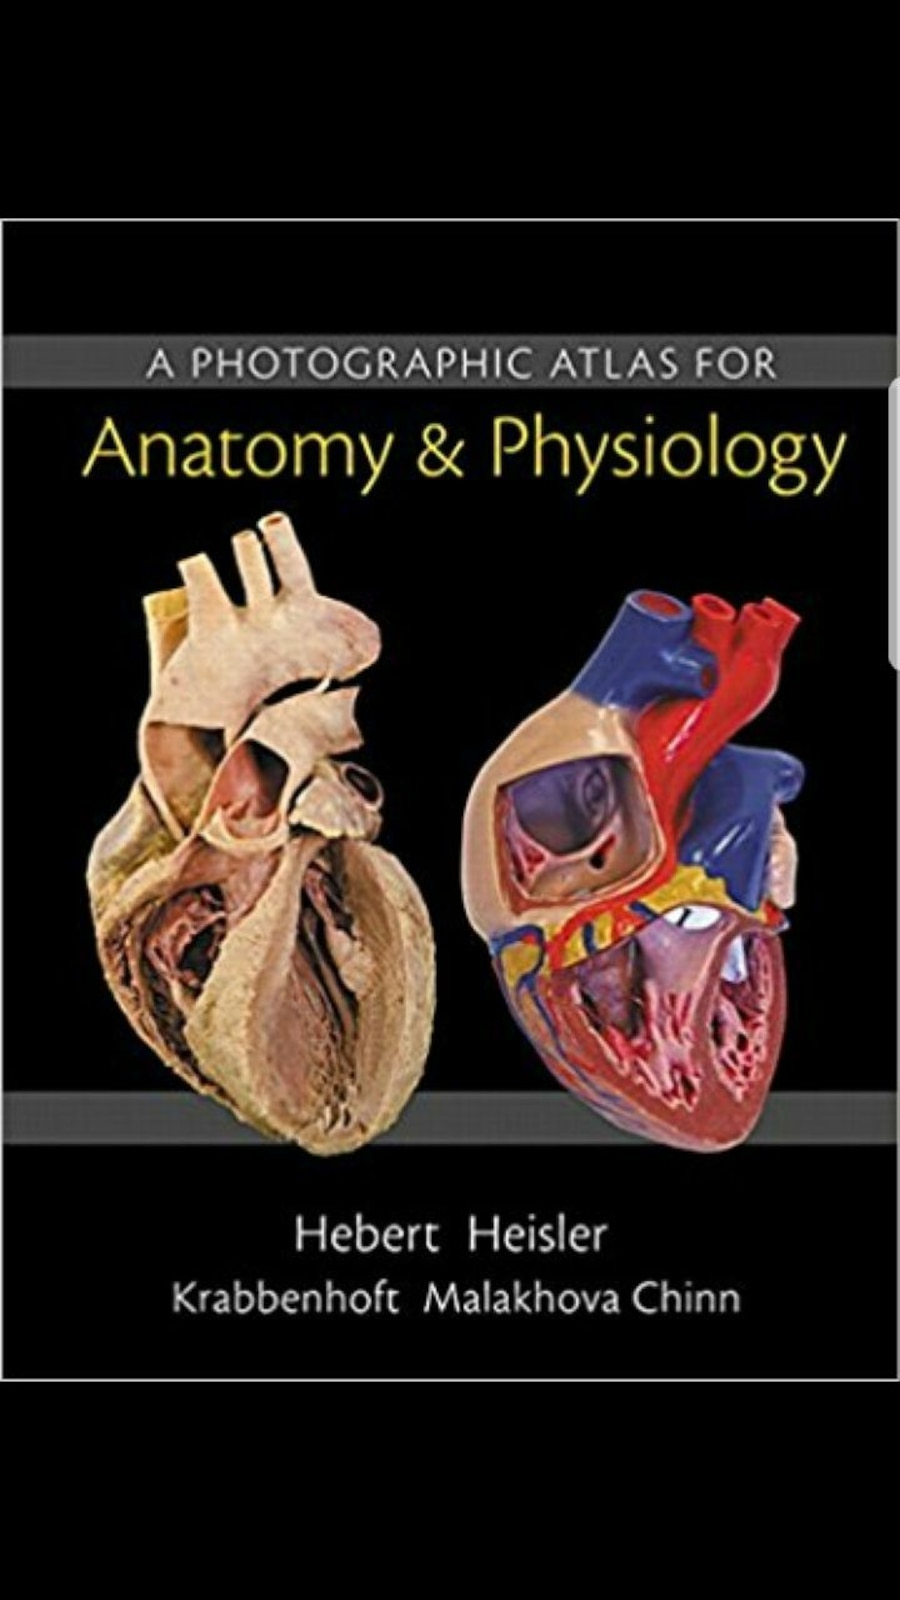 Used A Photographic Atlas for Anatomy & Physiology book by Heisler ...